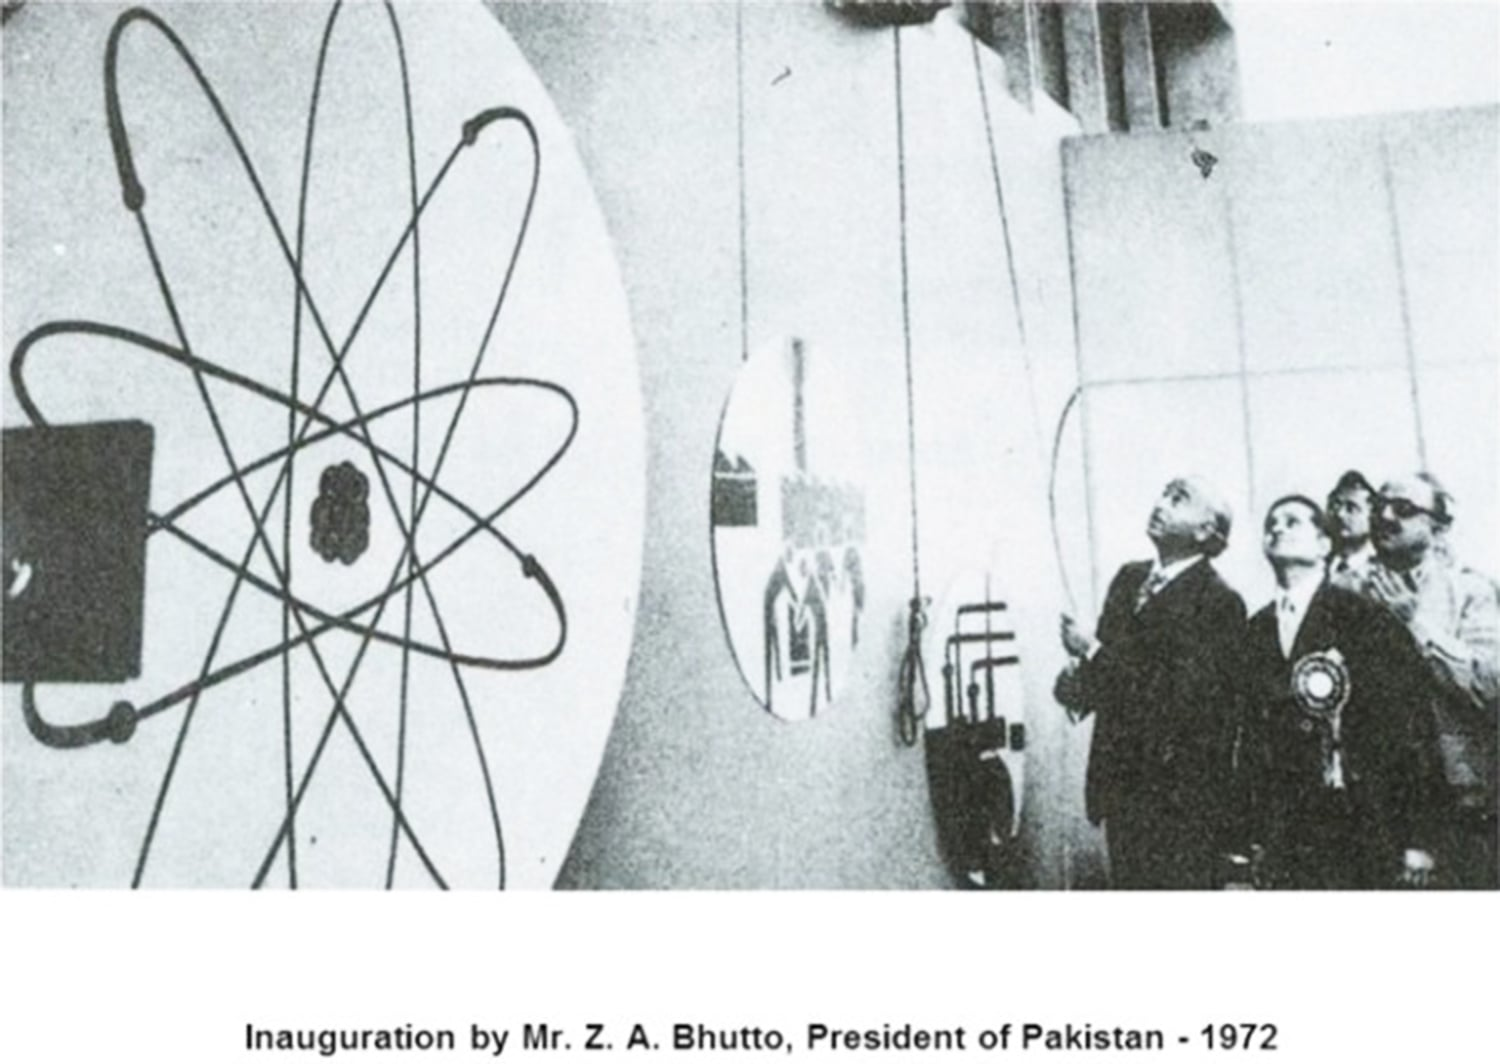 Bhutto inaugurates Pakistan's first nuclear-power plant in Karachi in 1972. Bhutto accelerated Pakistan's nuclear program in 1974 after India tested its first nuclear device. By the 1980s, Pakistan had developed its own nuclear device which it tested a decade later in 1998.